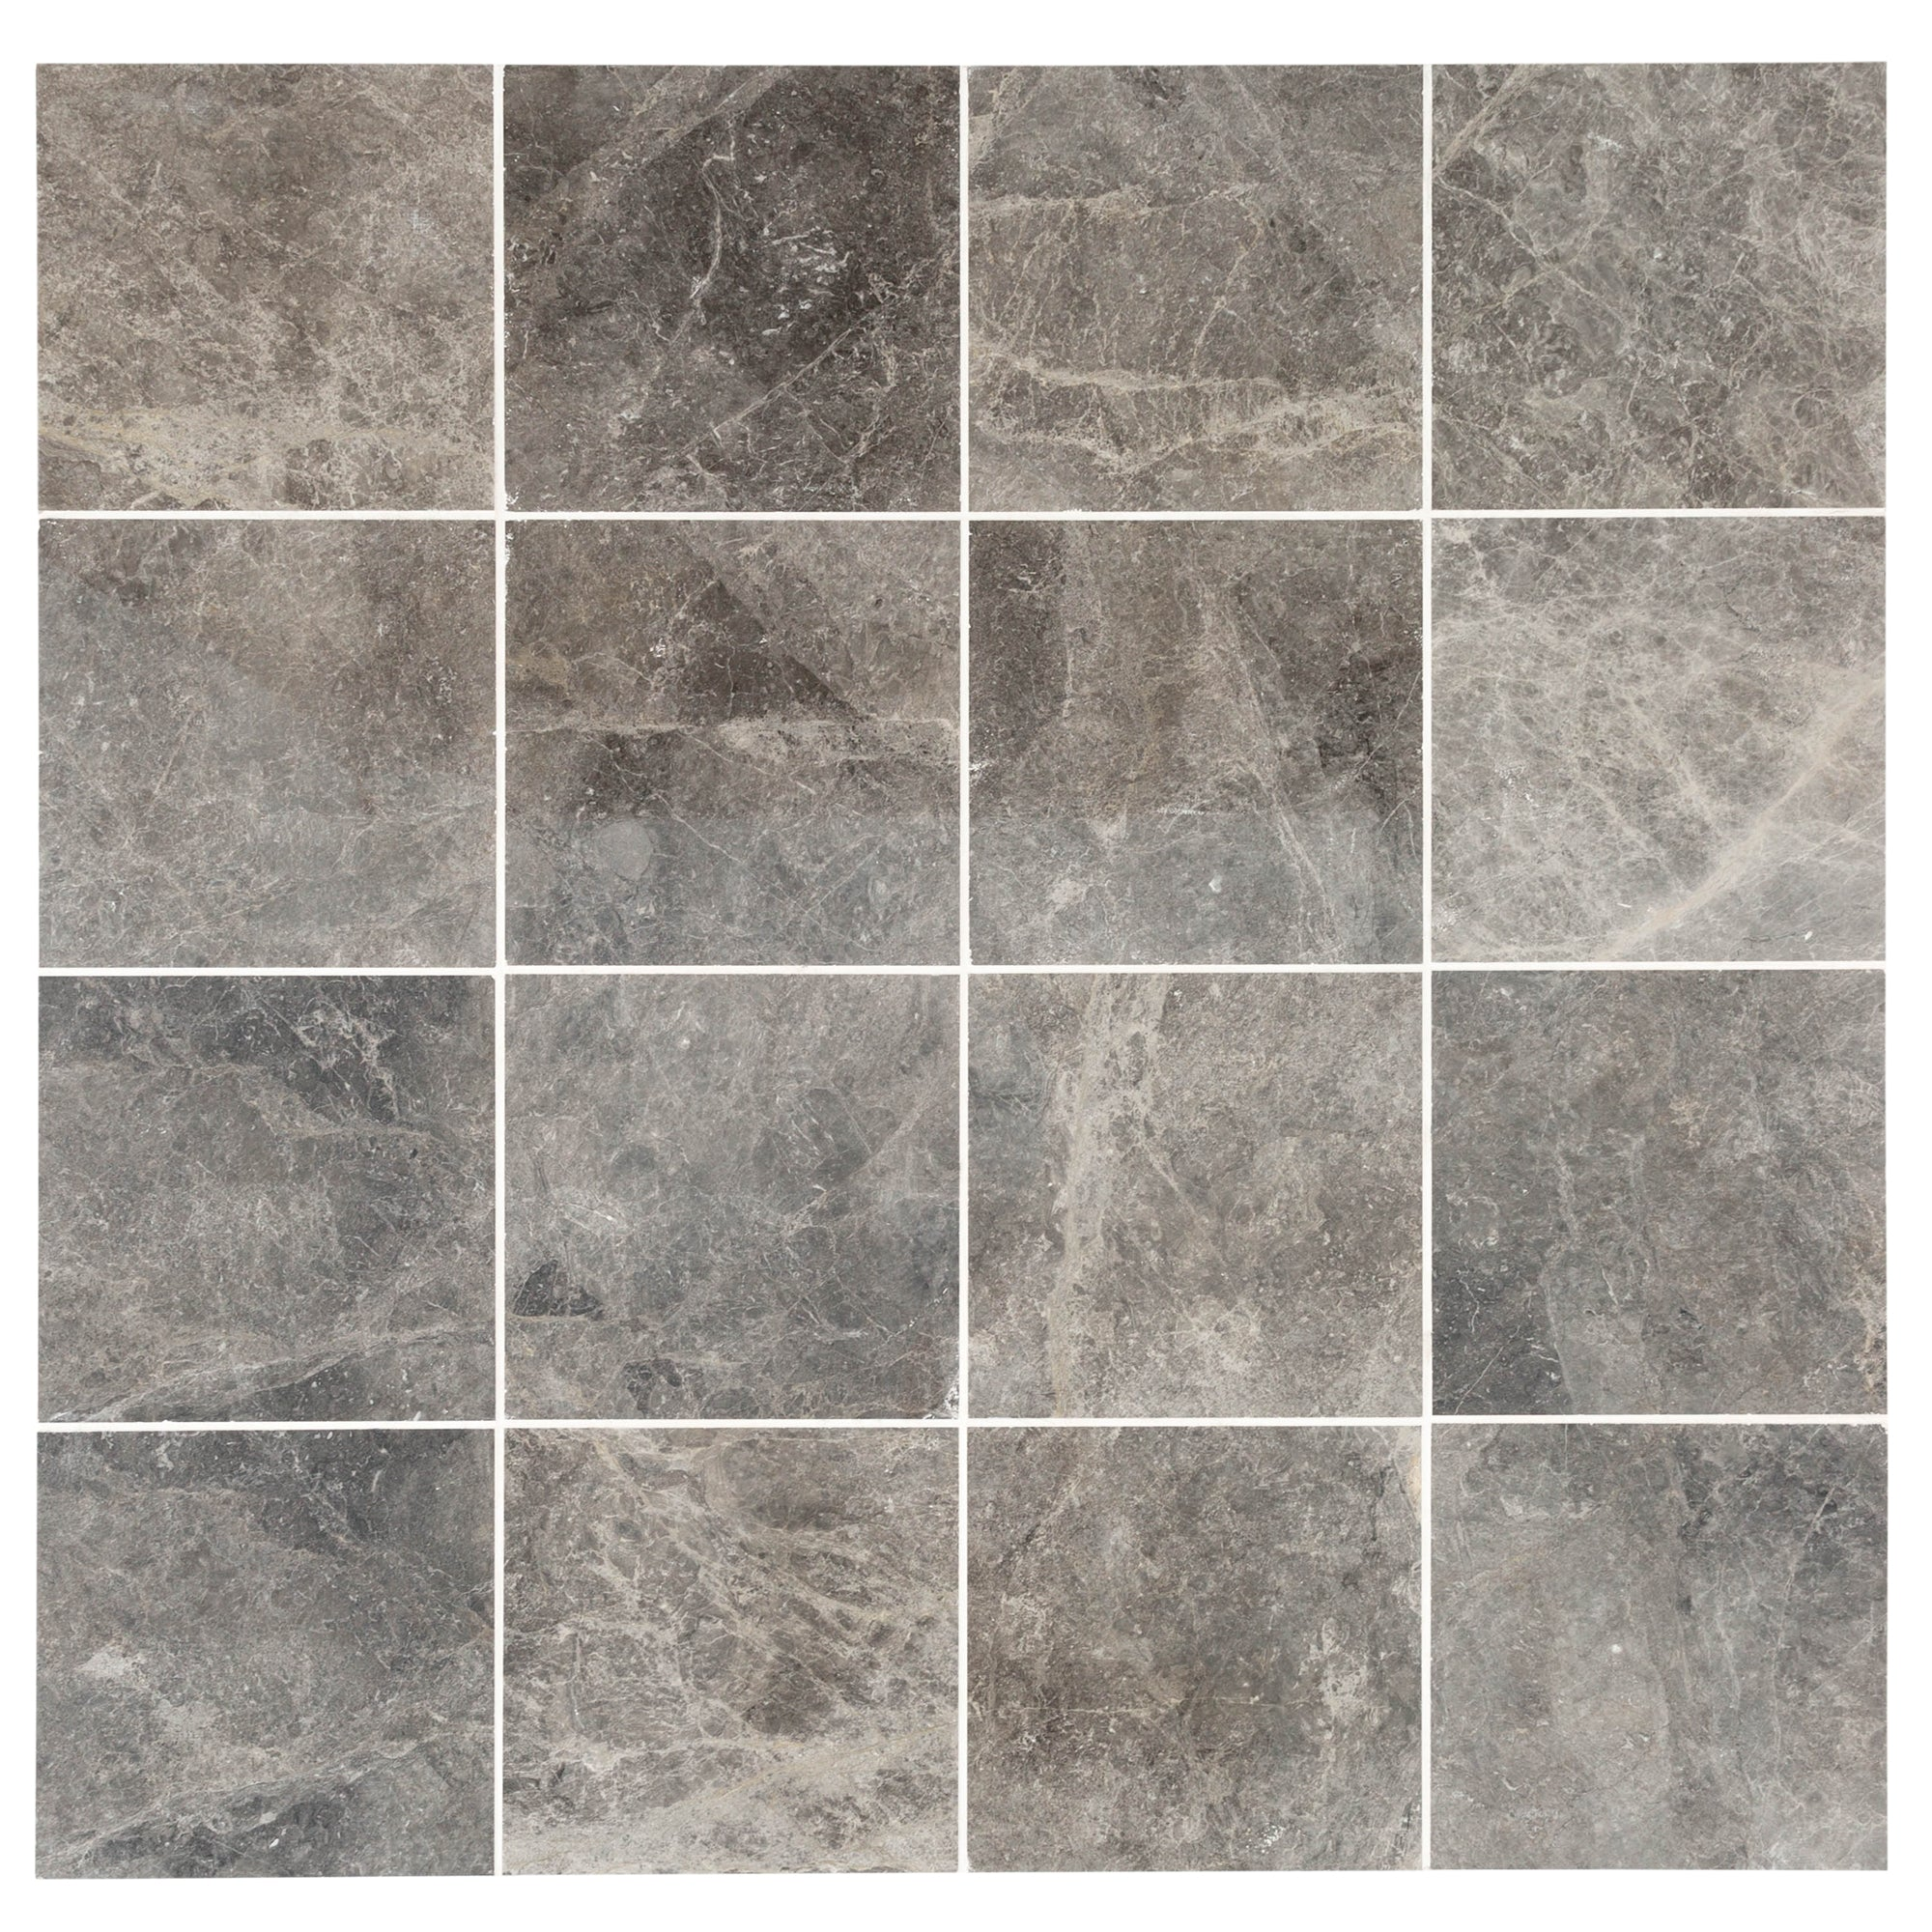 Buy Tundra Blue Marble Tiles 36x36x34online At Best Price In Usa